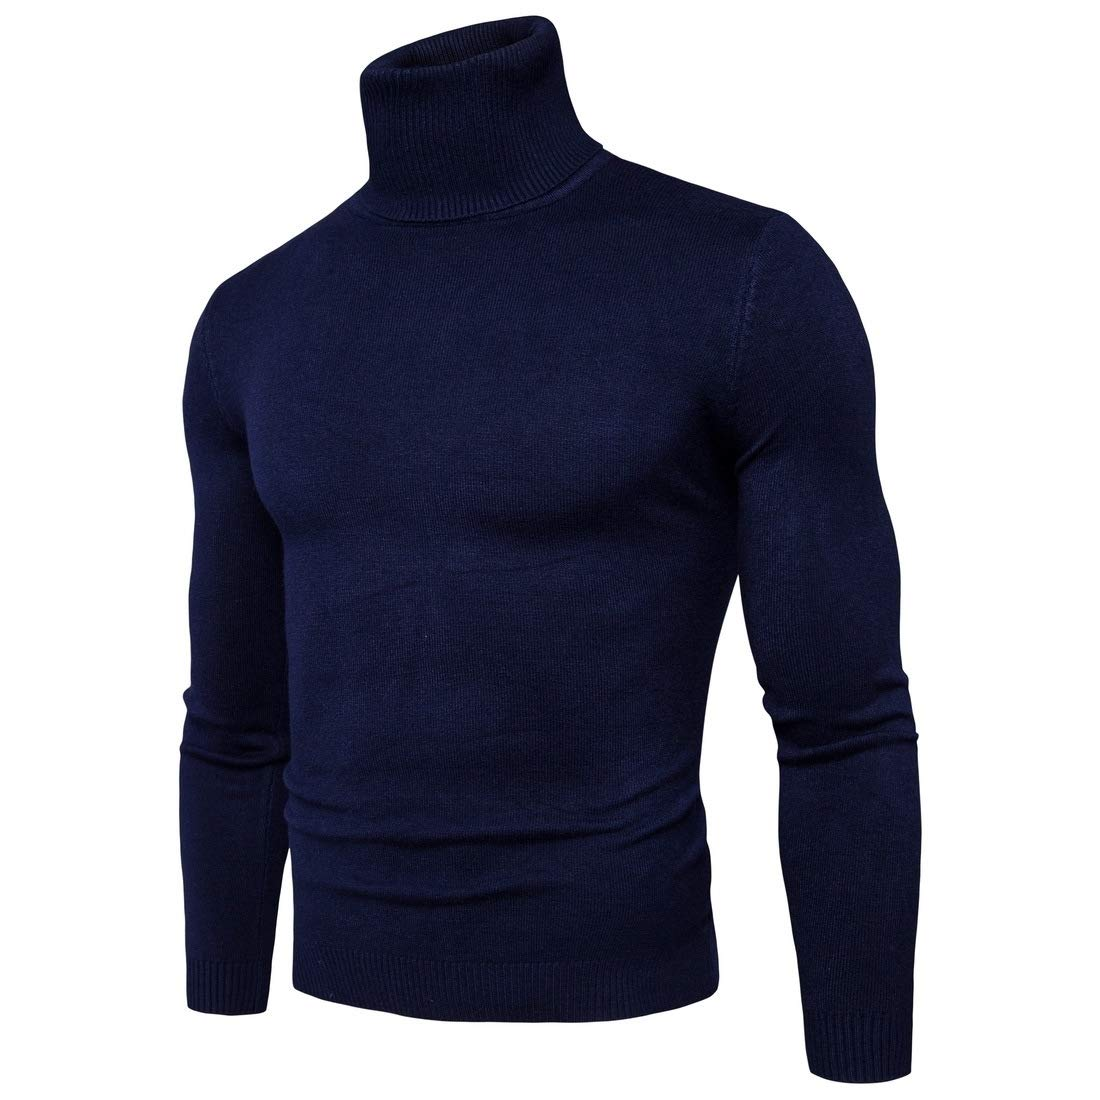 YUNY Mens Tops Turtle Neck Knit Solid Color Hipster Pullover Sweaters Navy Blue L